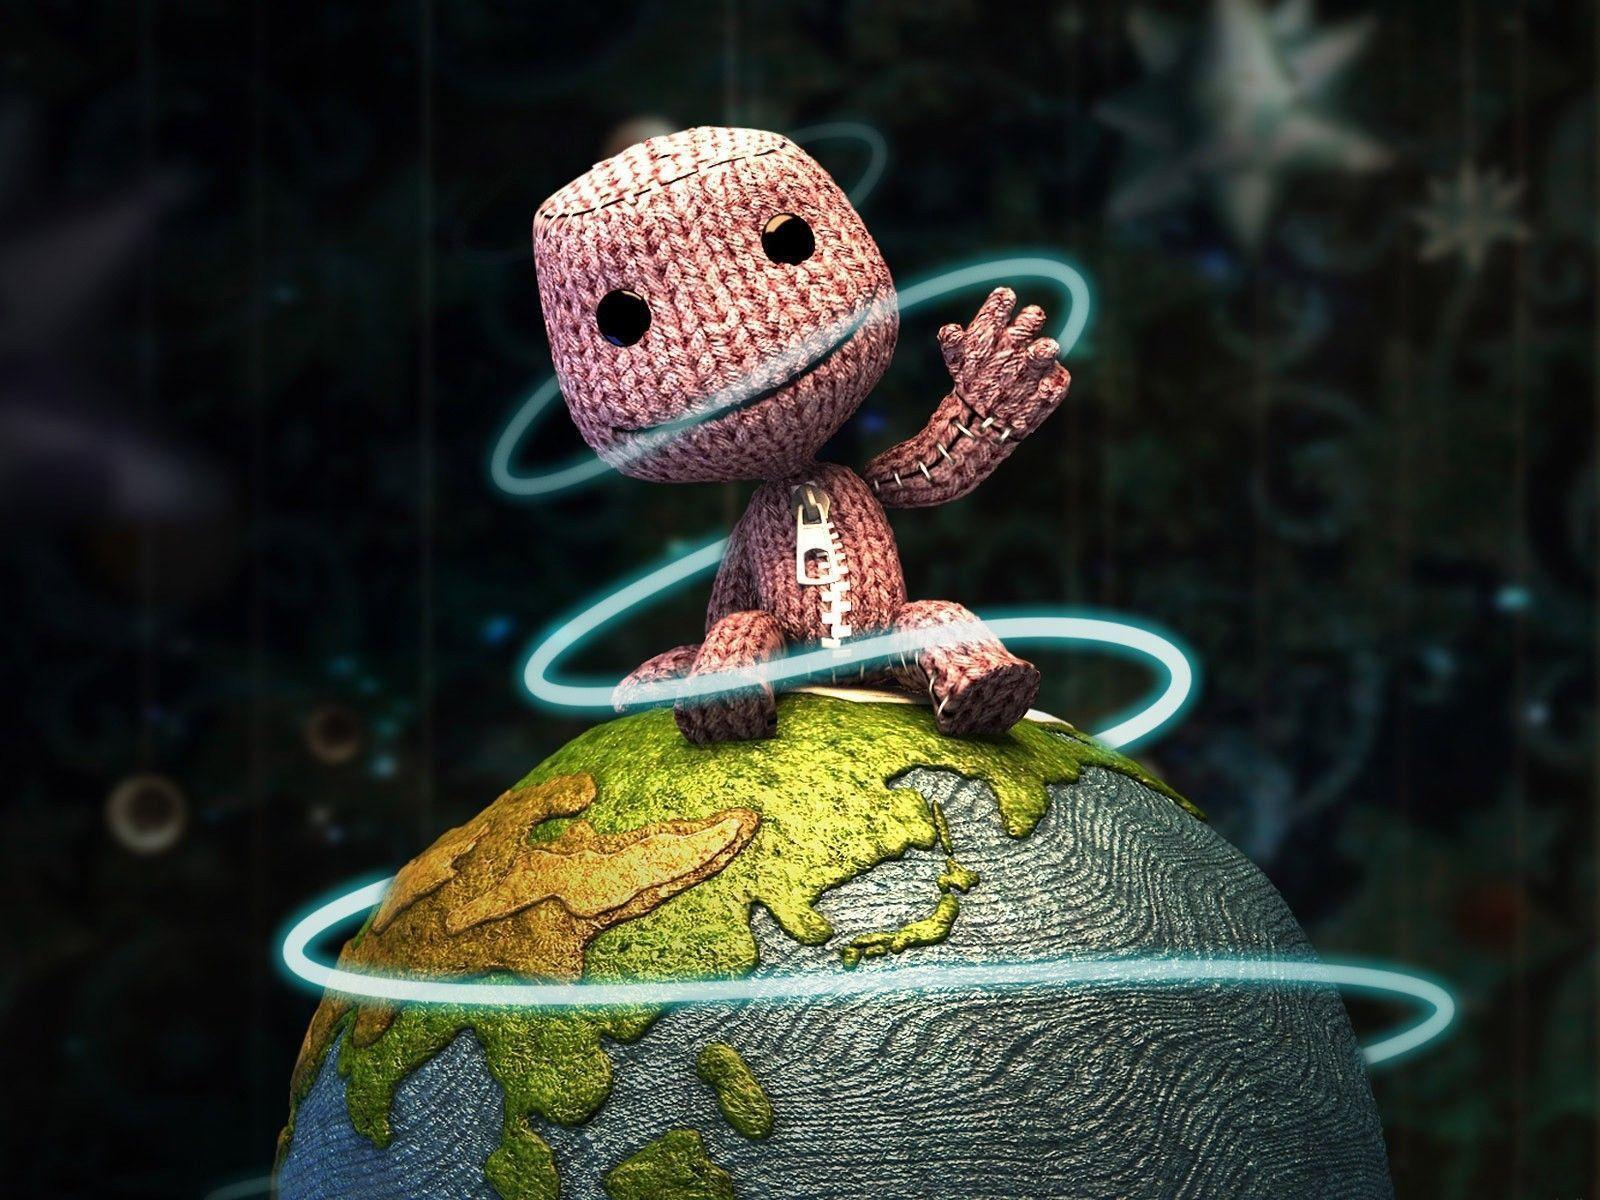 Little Big Planet Wallpaper: LittleBigPlanet Backgrounds